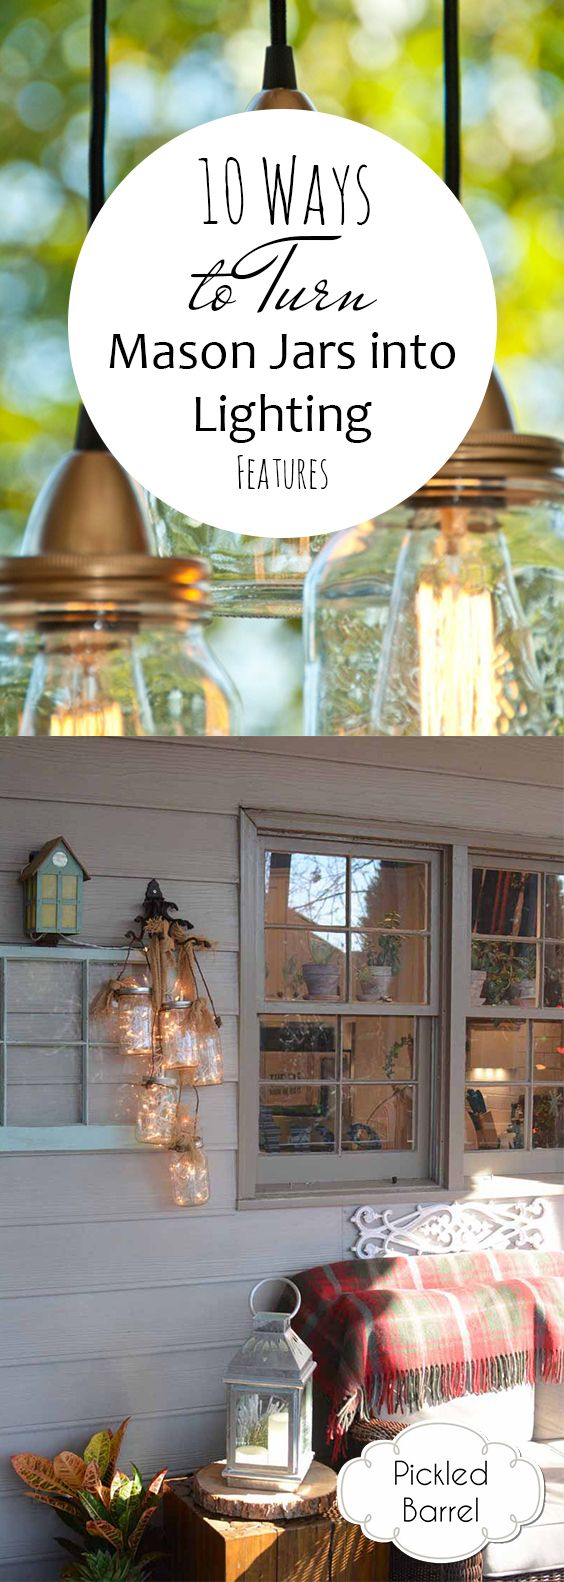 10 Ways to Turn Mason Jars into Lighting Features -